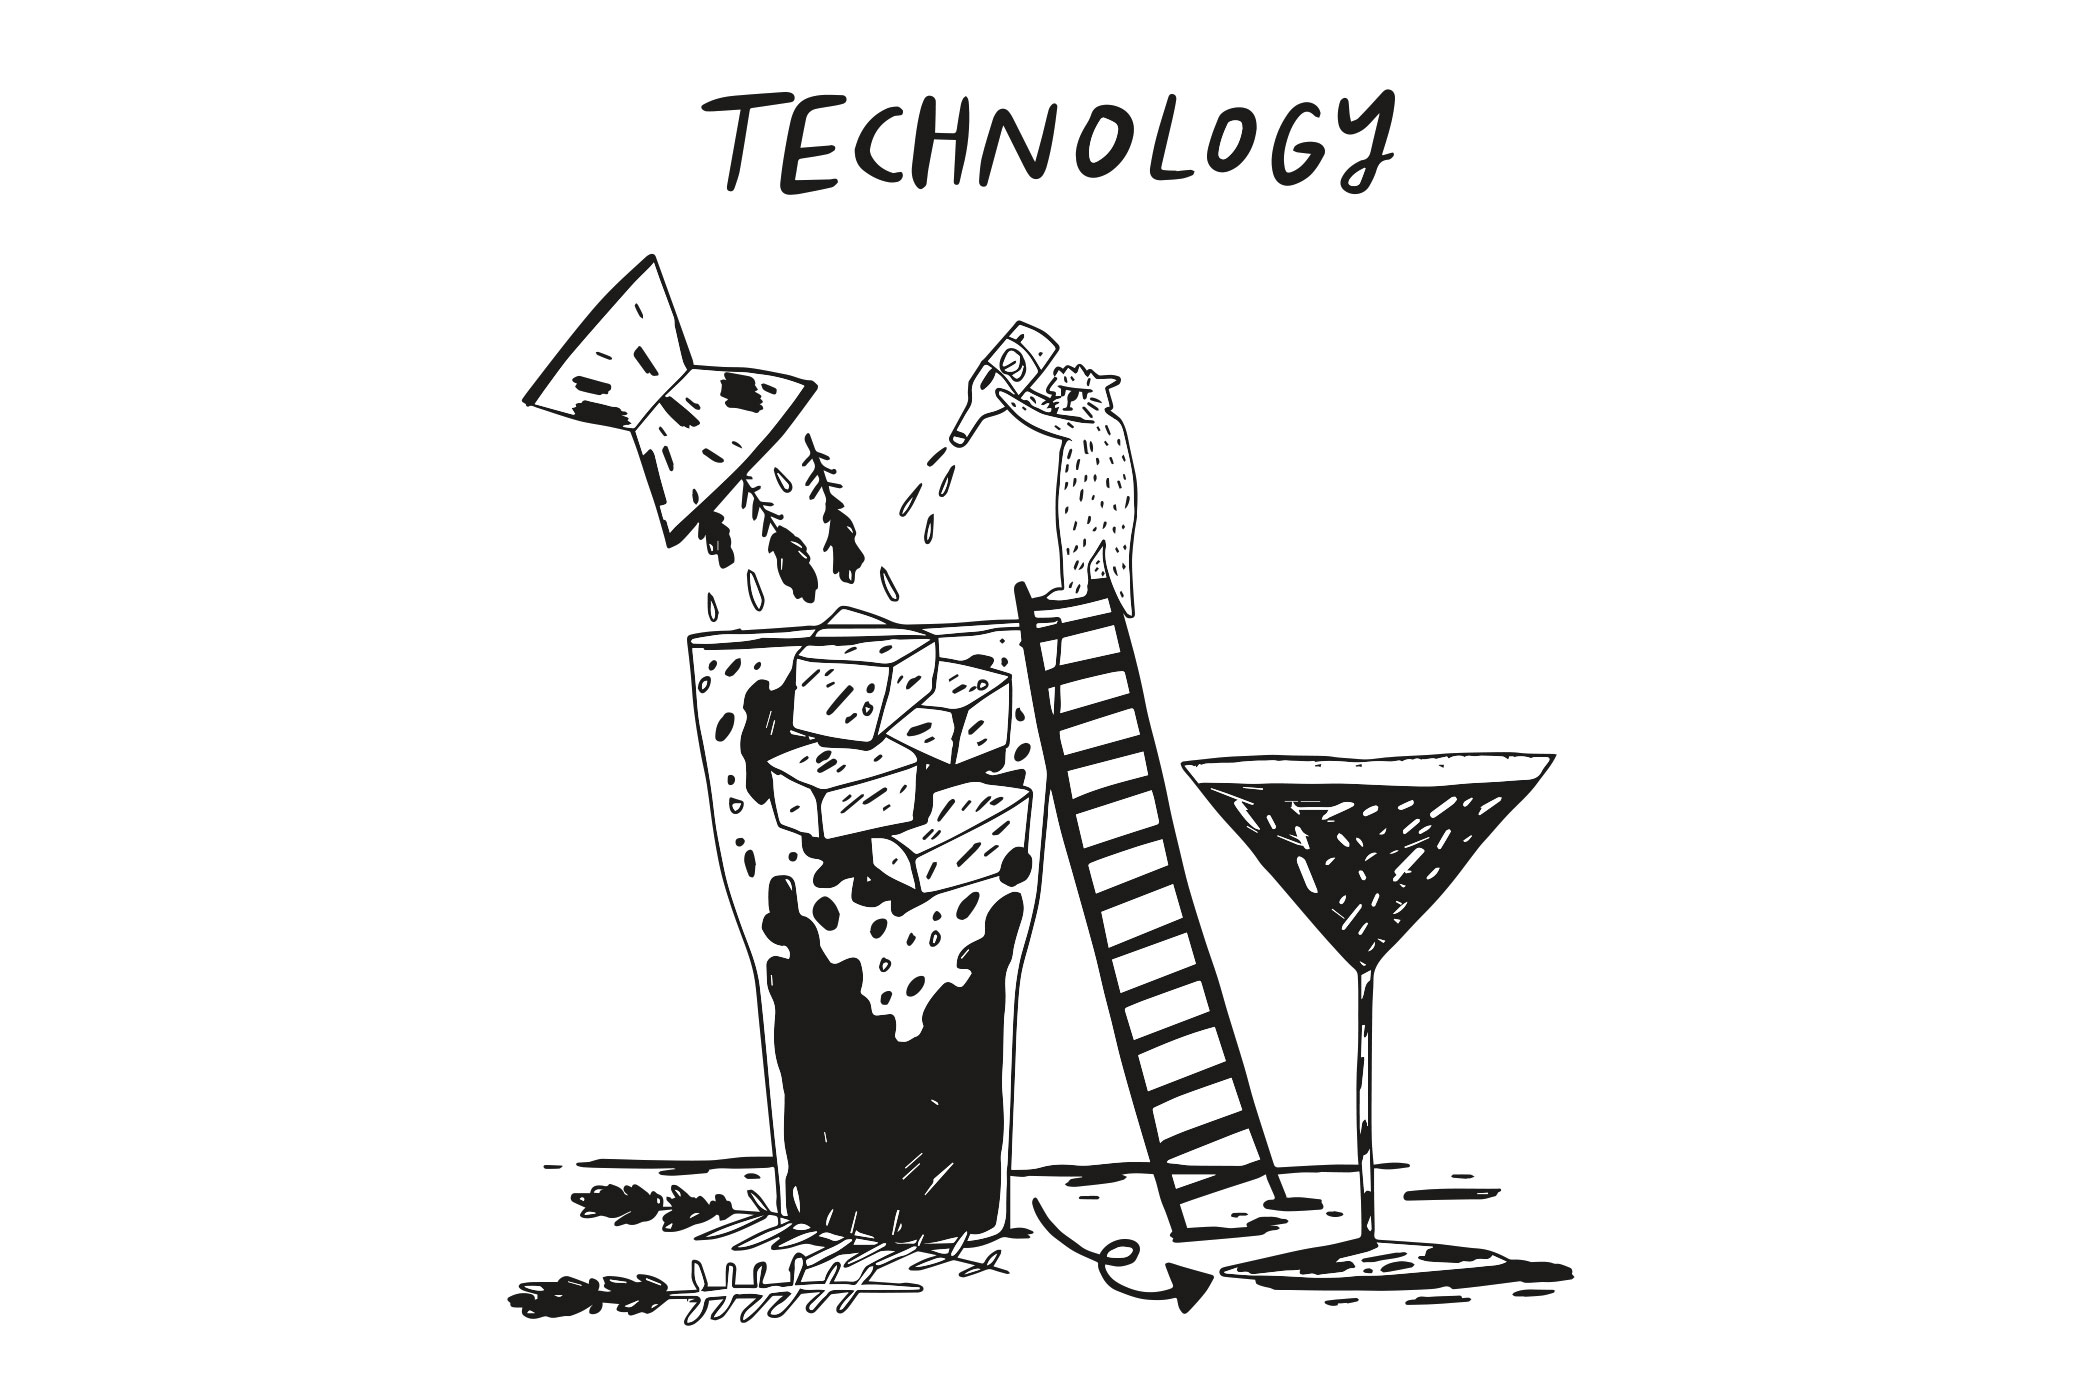 Technology web2